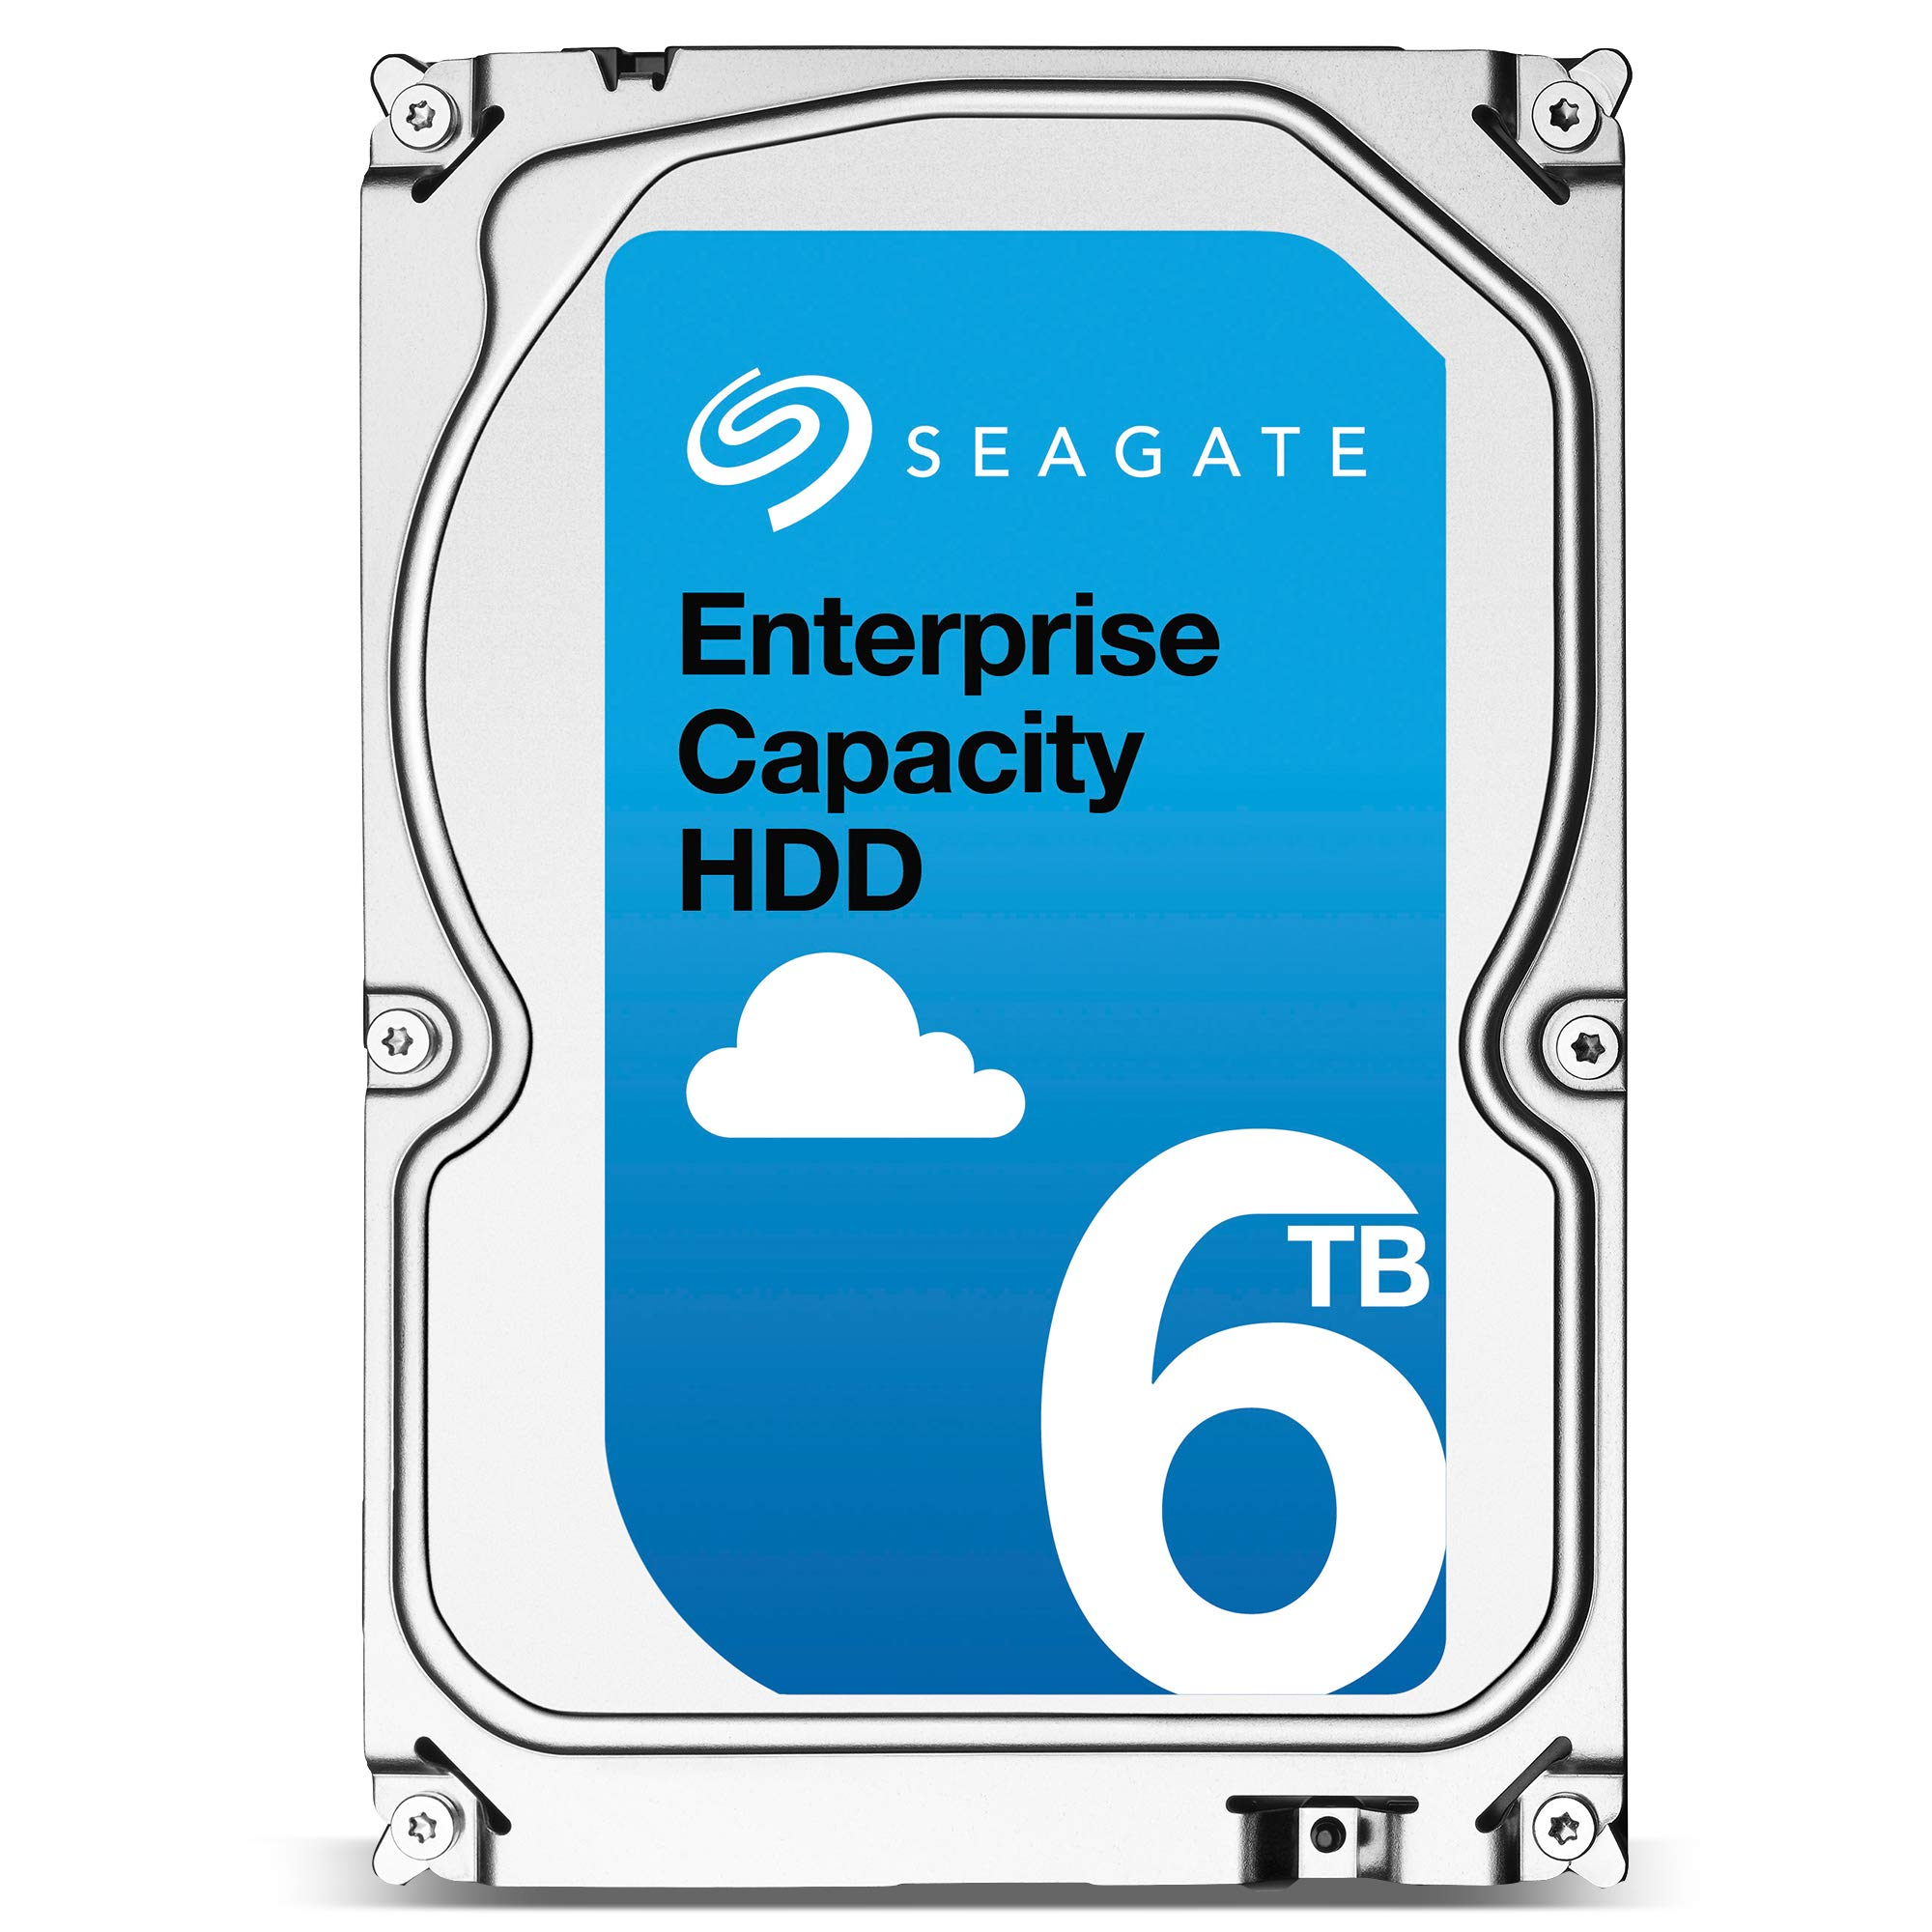 Seagate Enterprise Capacity 3.5 HDD| ST6000NM0034 | 6TB 7.2K RPM SAS 12Gb/s 128MB Cache 3.5' | 512n | Enterprise Hard Disk Drive for Hyperscale Applications (Renewed)